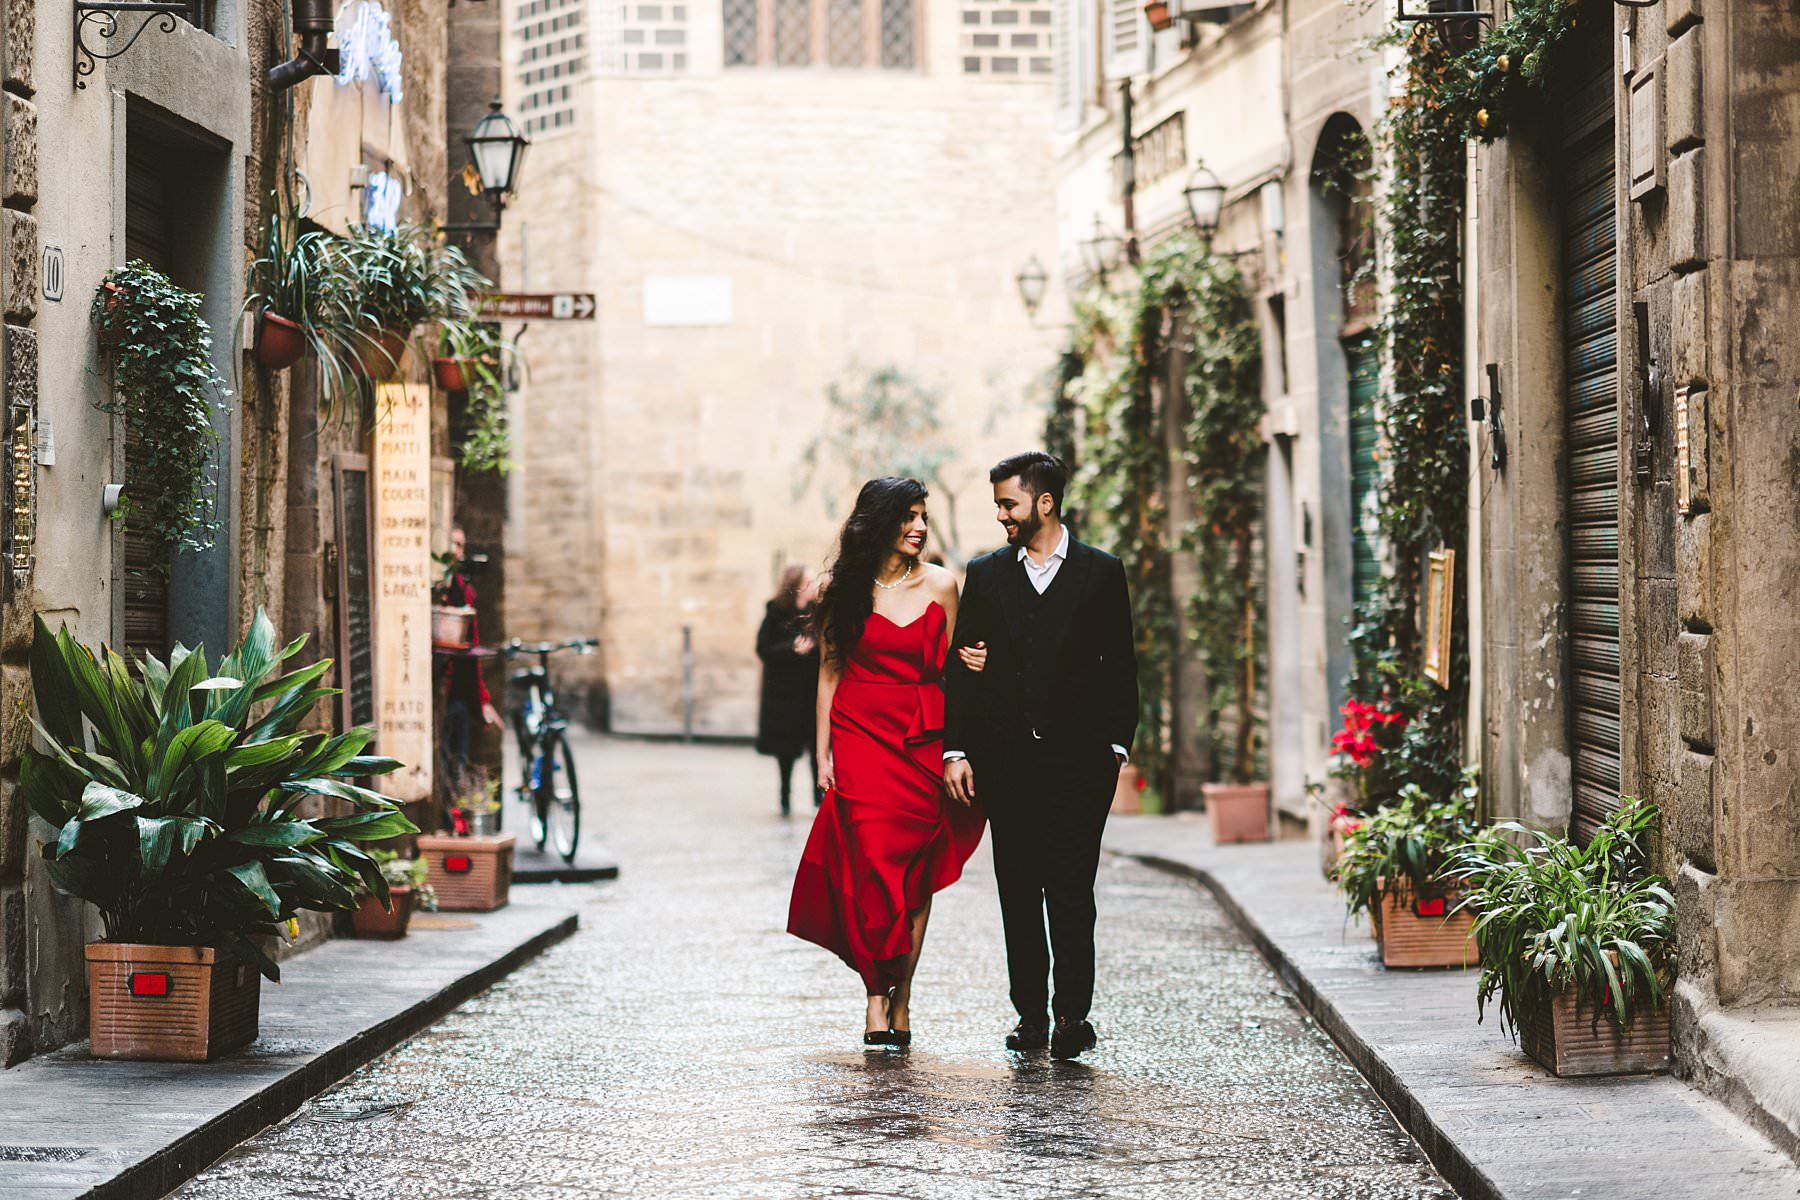 Priya and Sid's destination engagement in Florence. Are you planning a destination engagement in Tuscany and wish to capture it with a photoshoot? Get inspired by these pictures: I'll happily be your photographer!